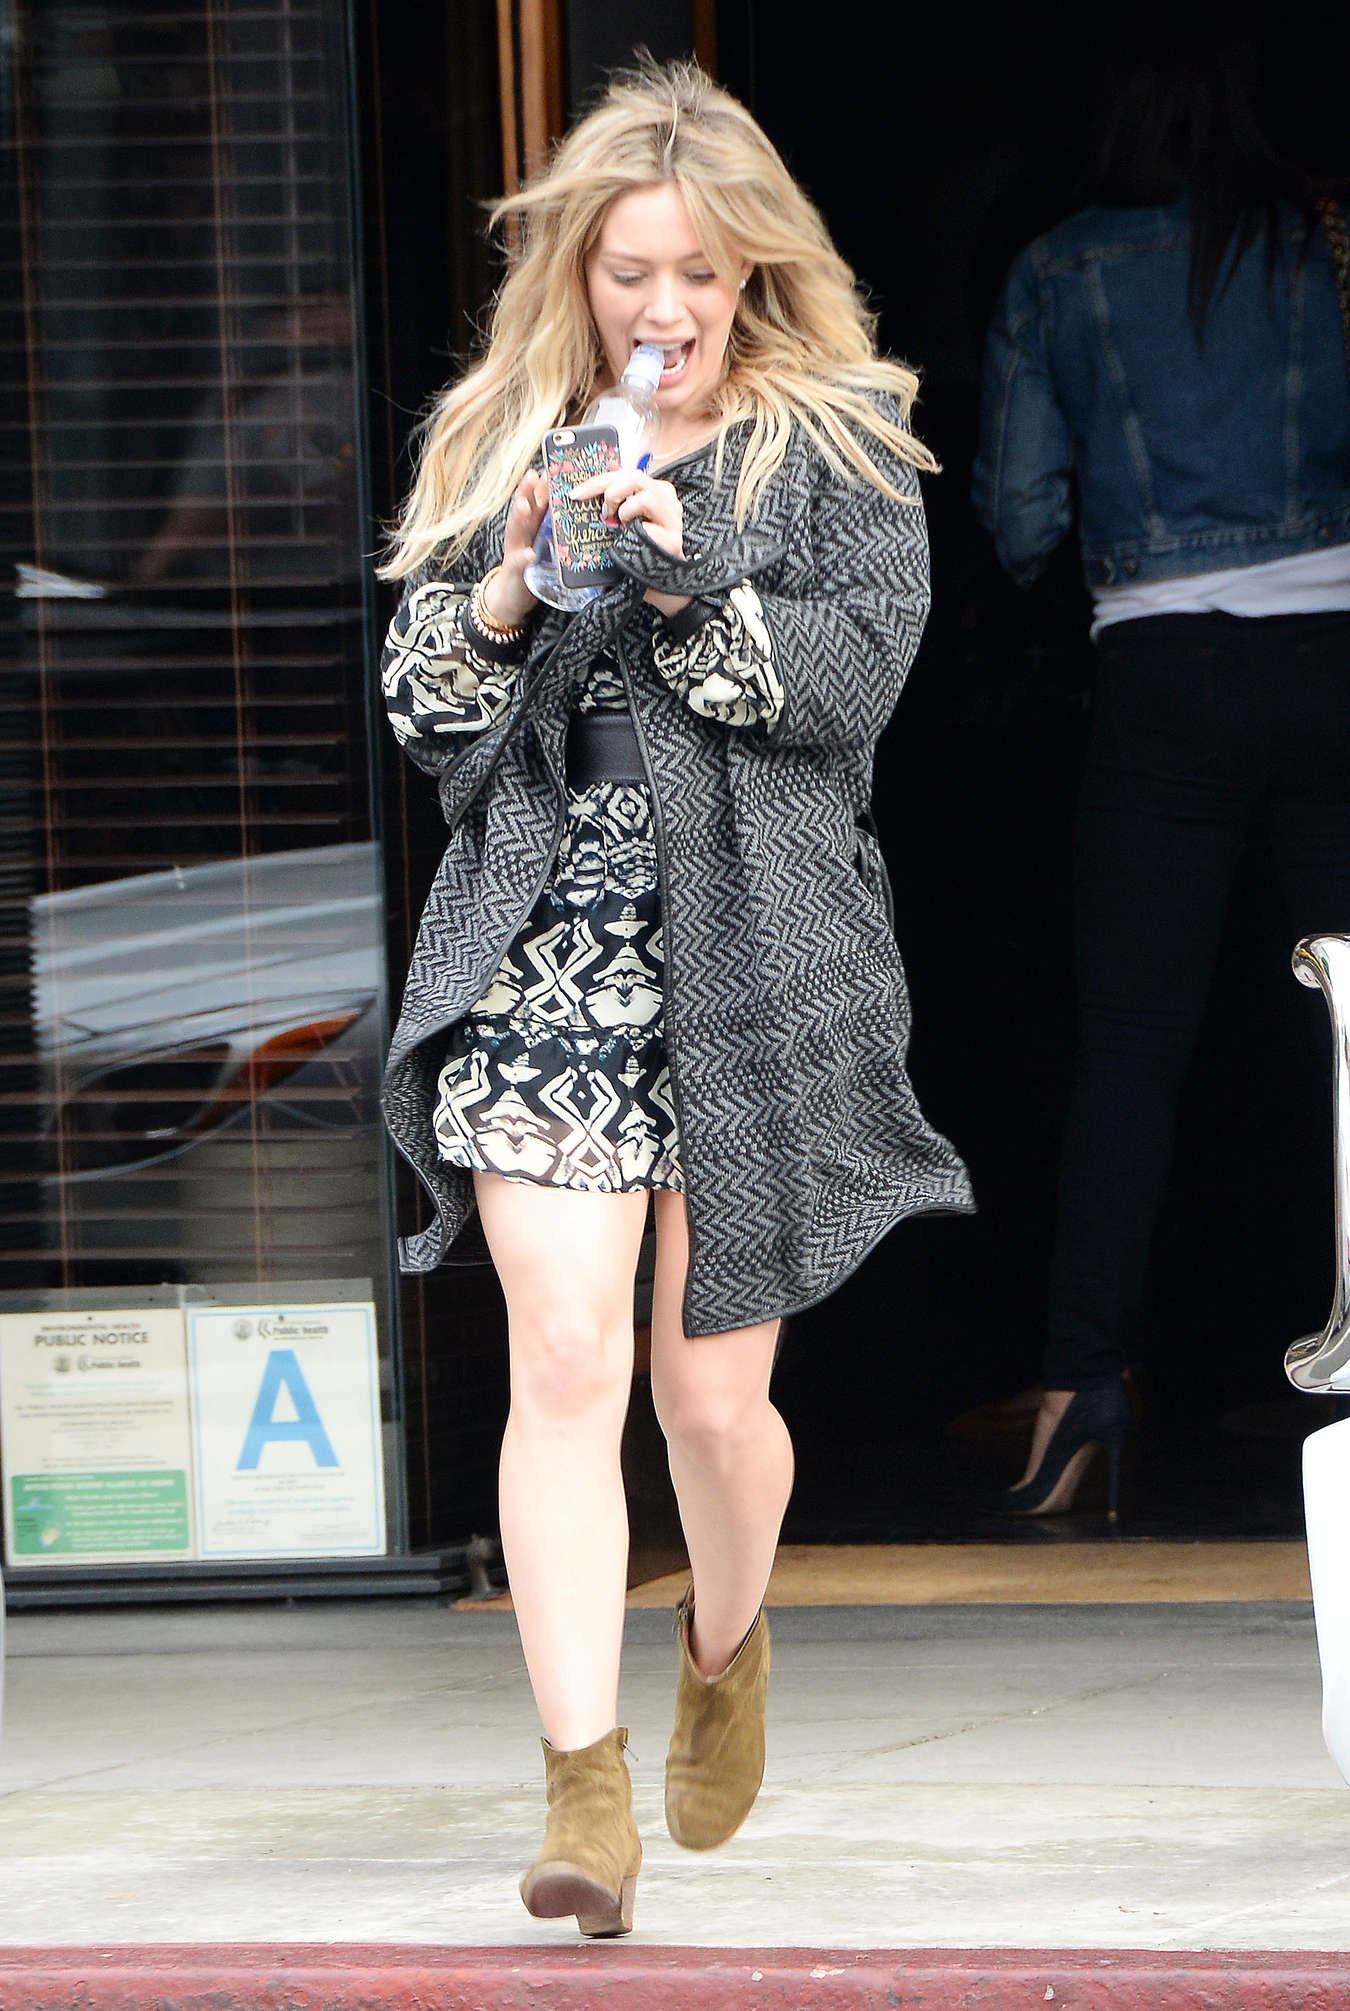 Forum on this topic: Blanche Sweet, 37-hilary-duff/